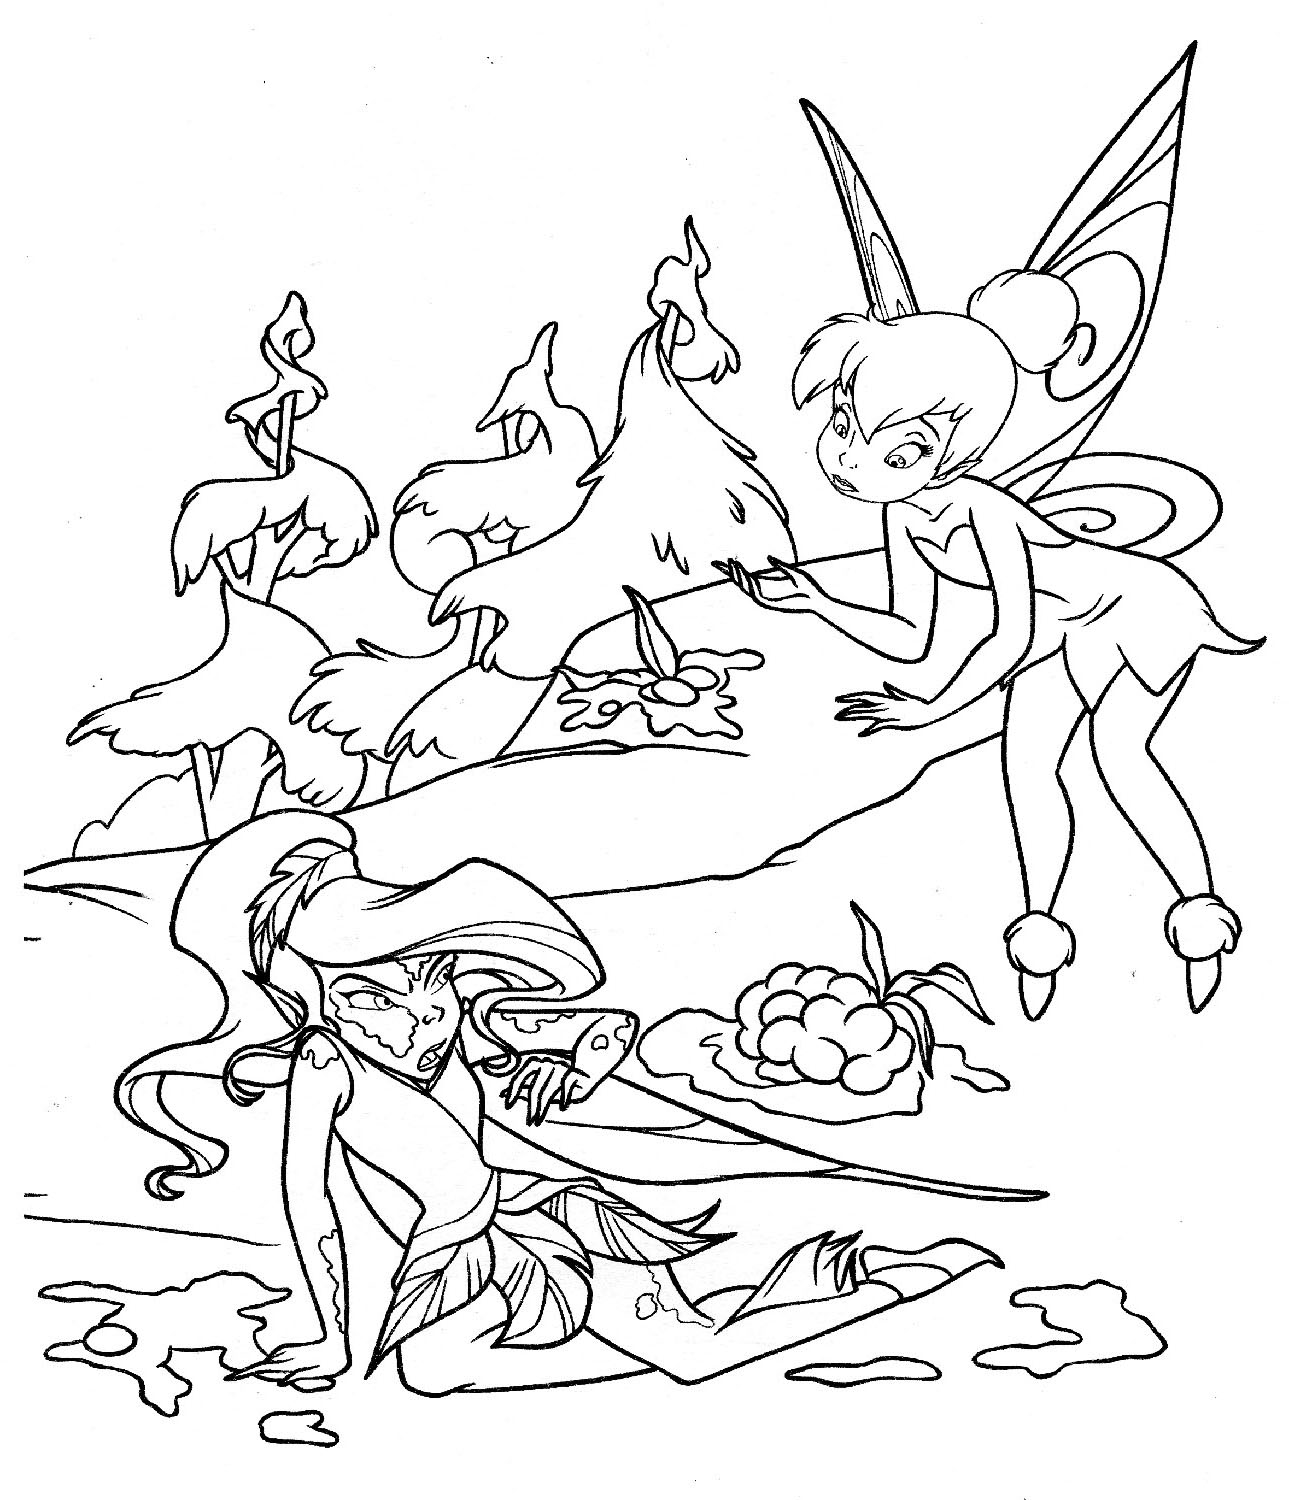 tinkerbell coloring book 30 tinkerbell coloring pages free coloring pages free coloring book tinkerbell